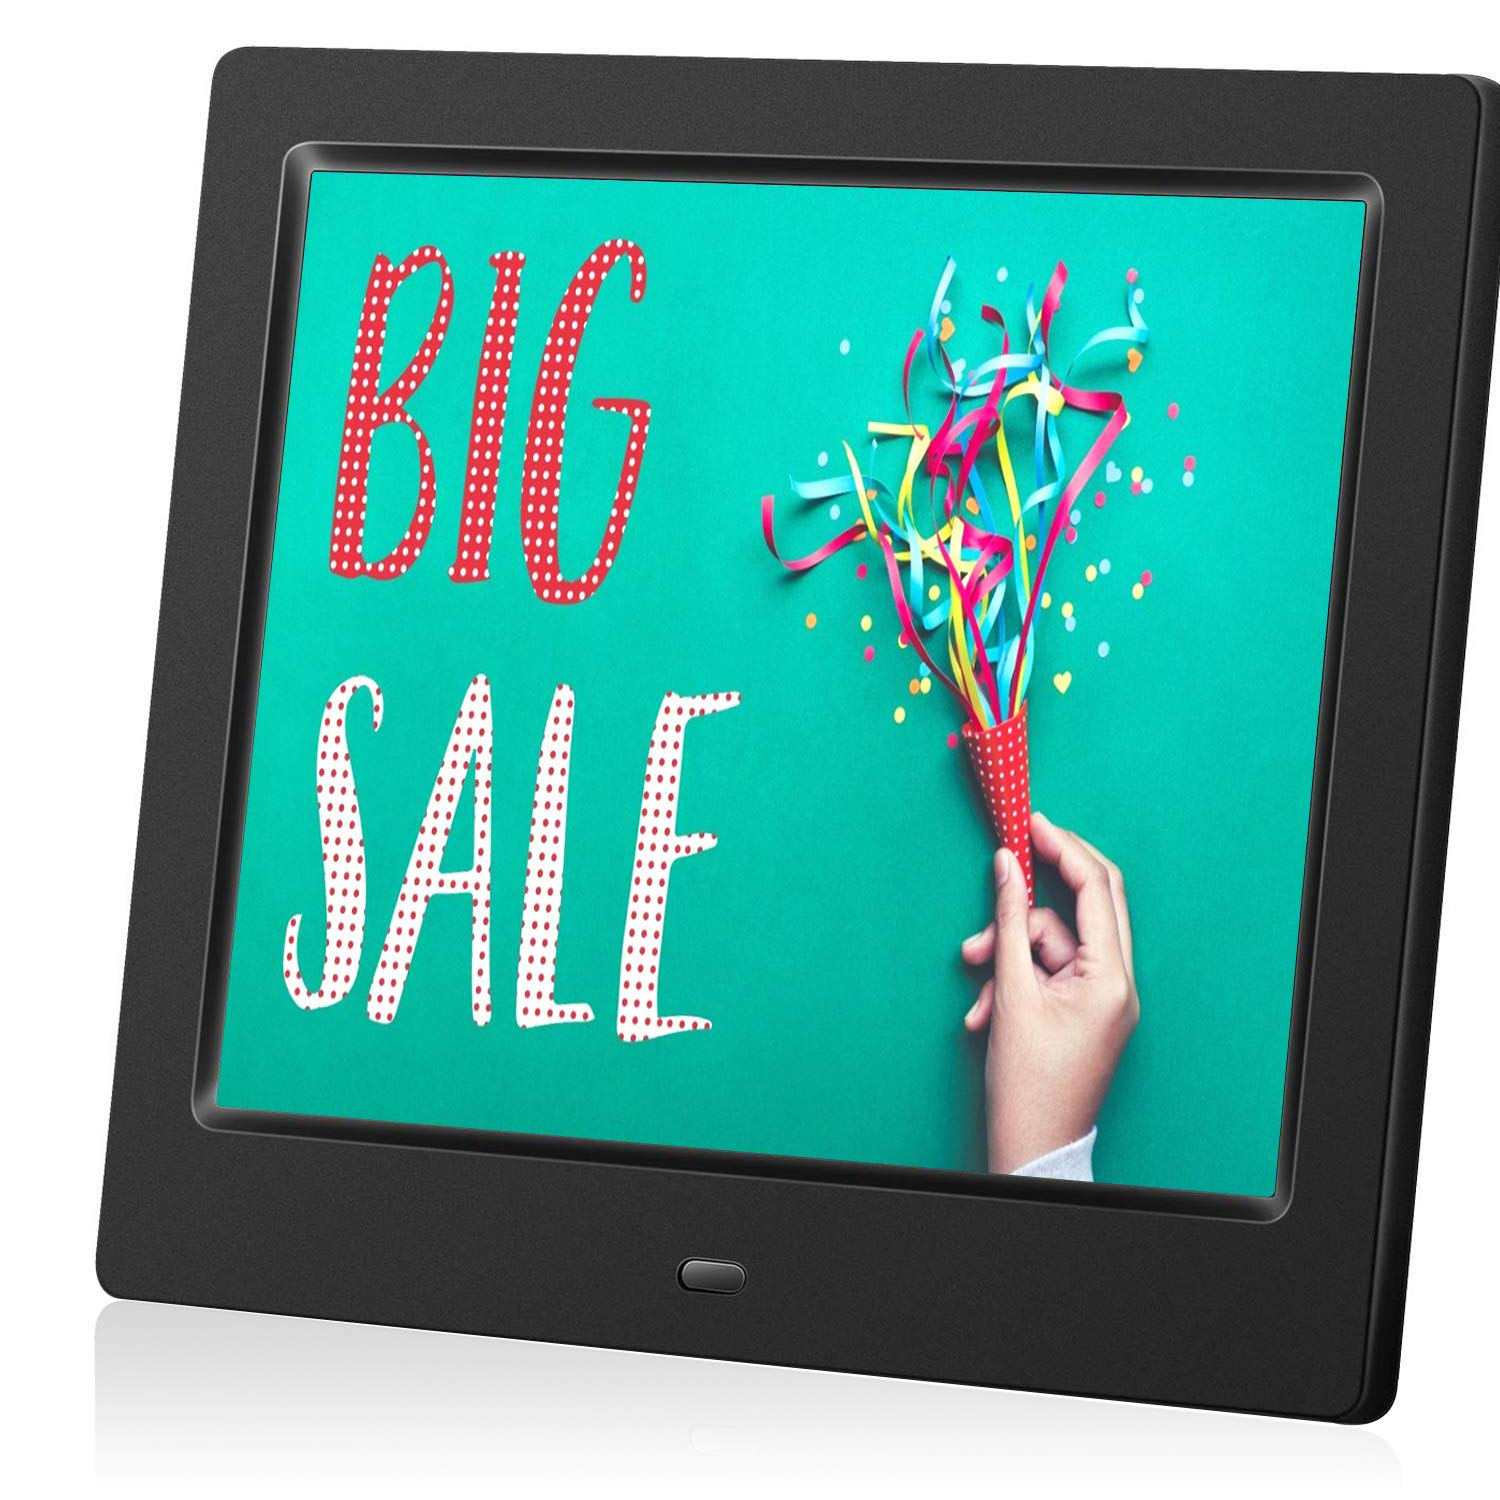 MRQ 8 Inch Digital Photo Frame, Picture Frame with HD IPS Screen 180° Degree Wide Viewing Angle with Remote Control, Support Video/Photo/Music Playing, with USB SD Slot by MRQ